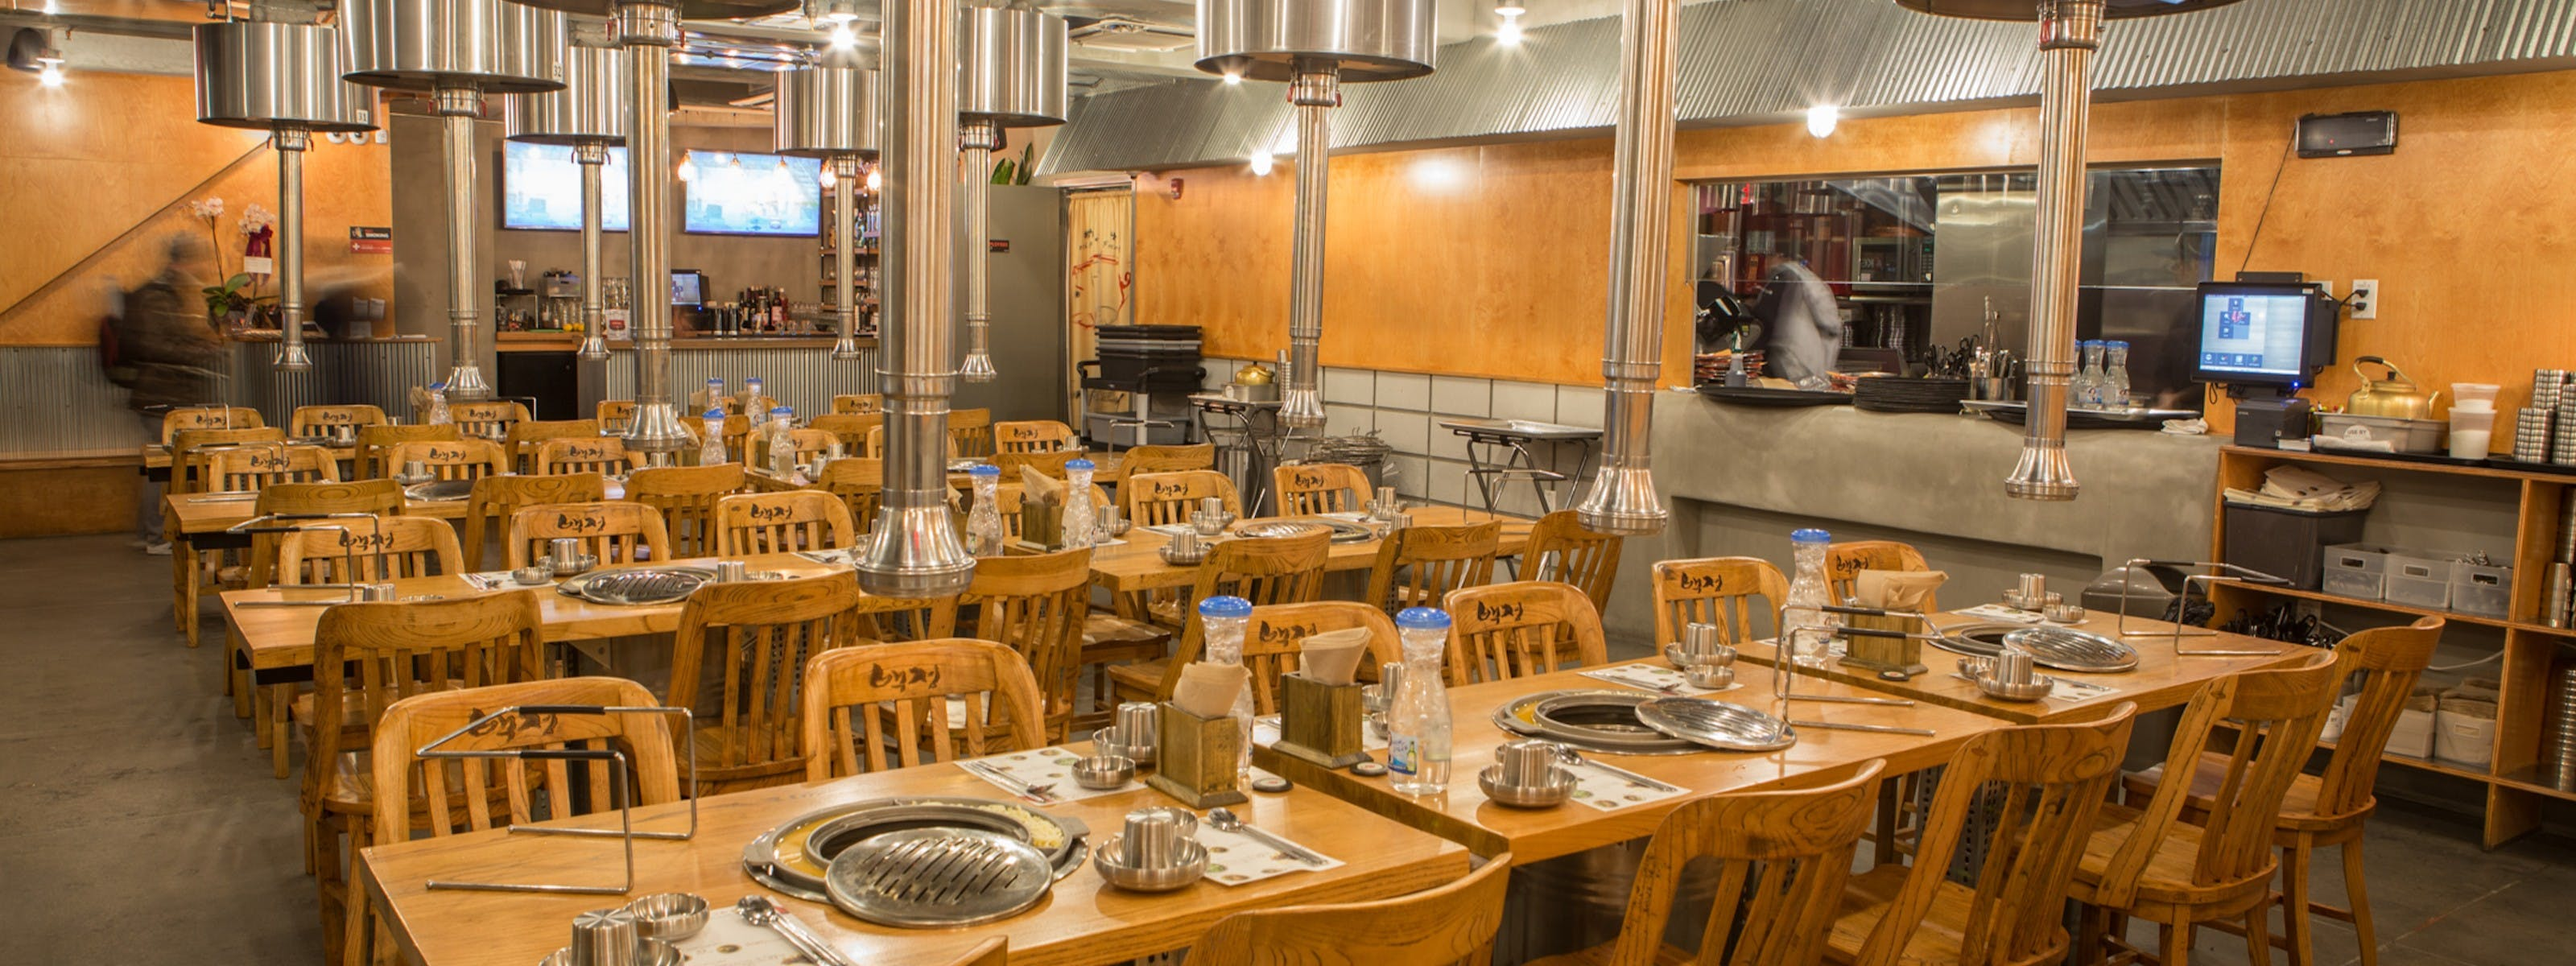 Where To Have Your Birthday Dinner In Nyc New York The Infatuation